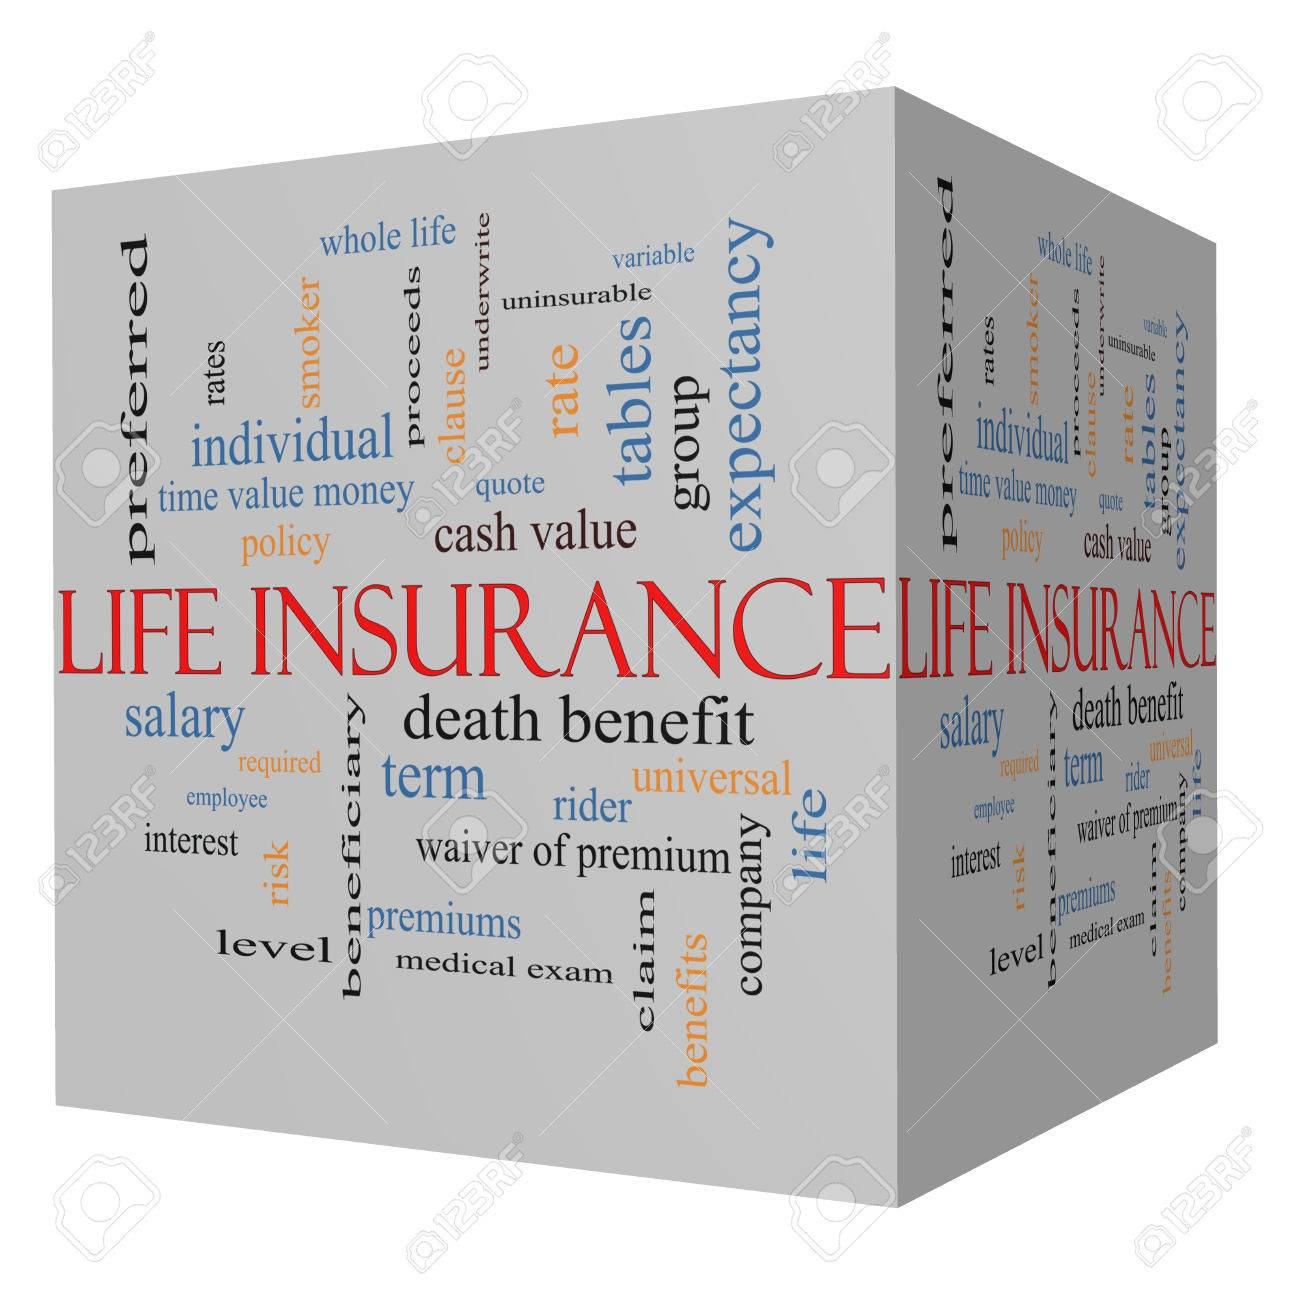 Life Insurance Quotes Whole Life Life Insurance Word Cloud Concept On A 3D Cube With Great Terms